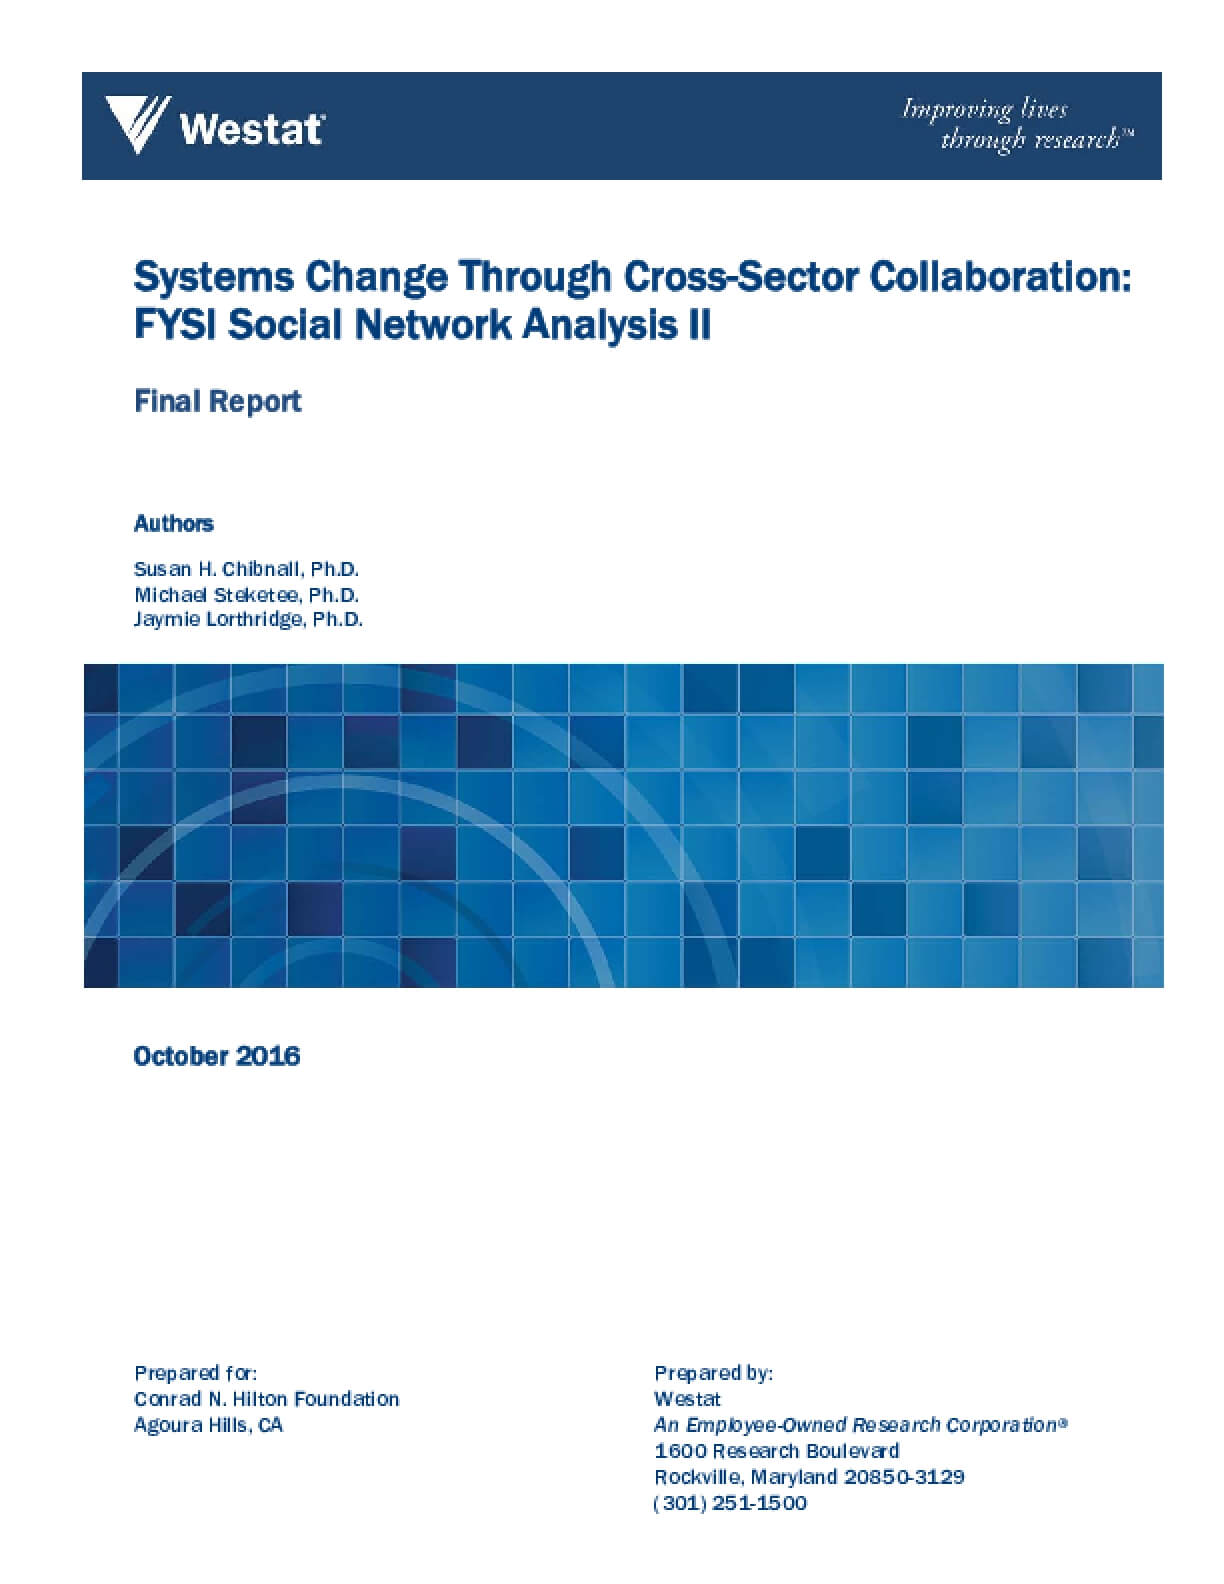 Systems Change through Cross-Sector Collaboration: FYSI Social Network Analysis II